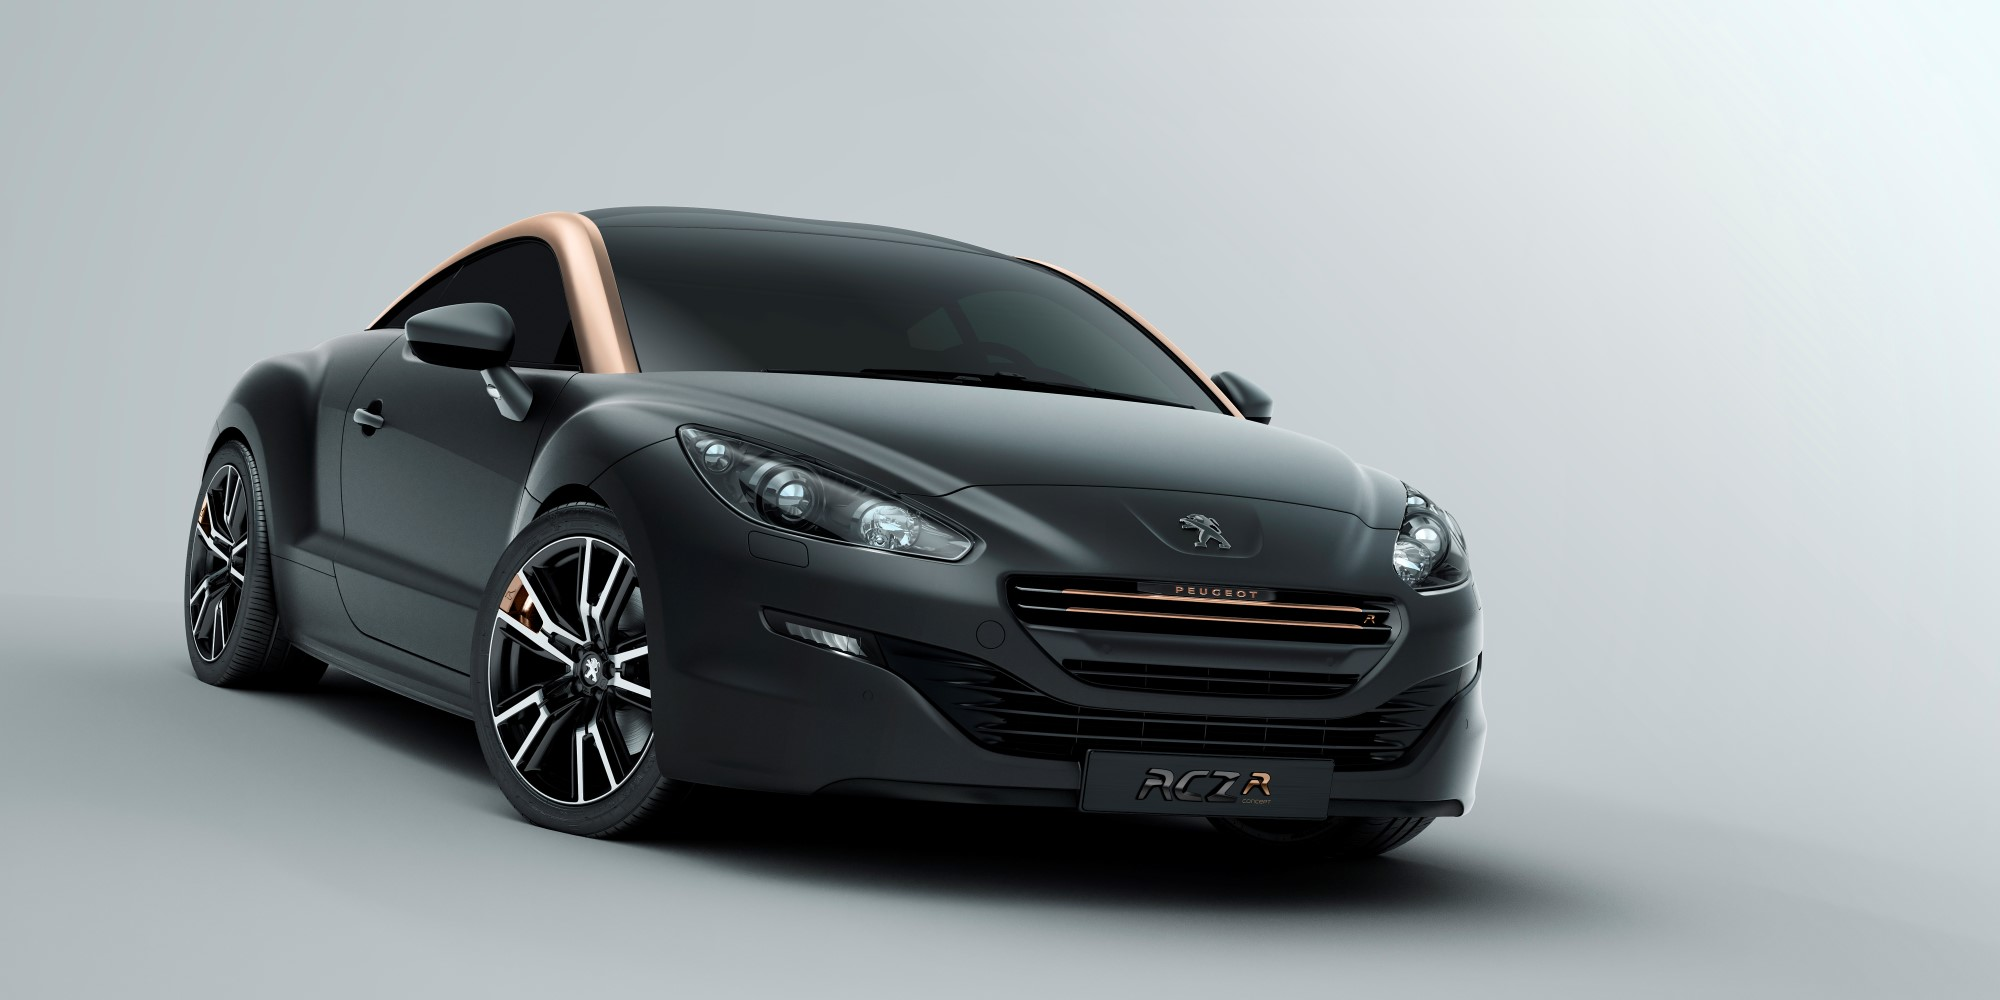 production peugeot rcz r headed to goodwood festival of speed forbidden fruit. Black Bedroom Furniture Sets. Home Design Ideas